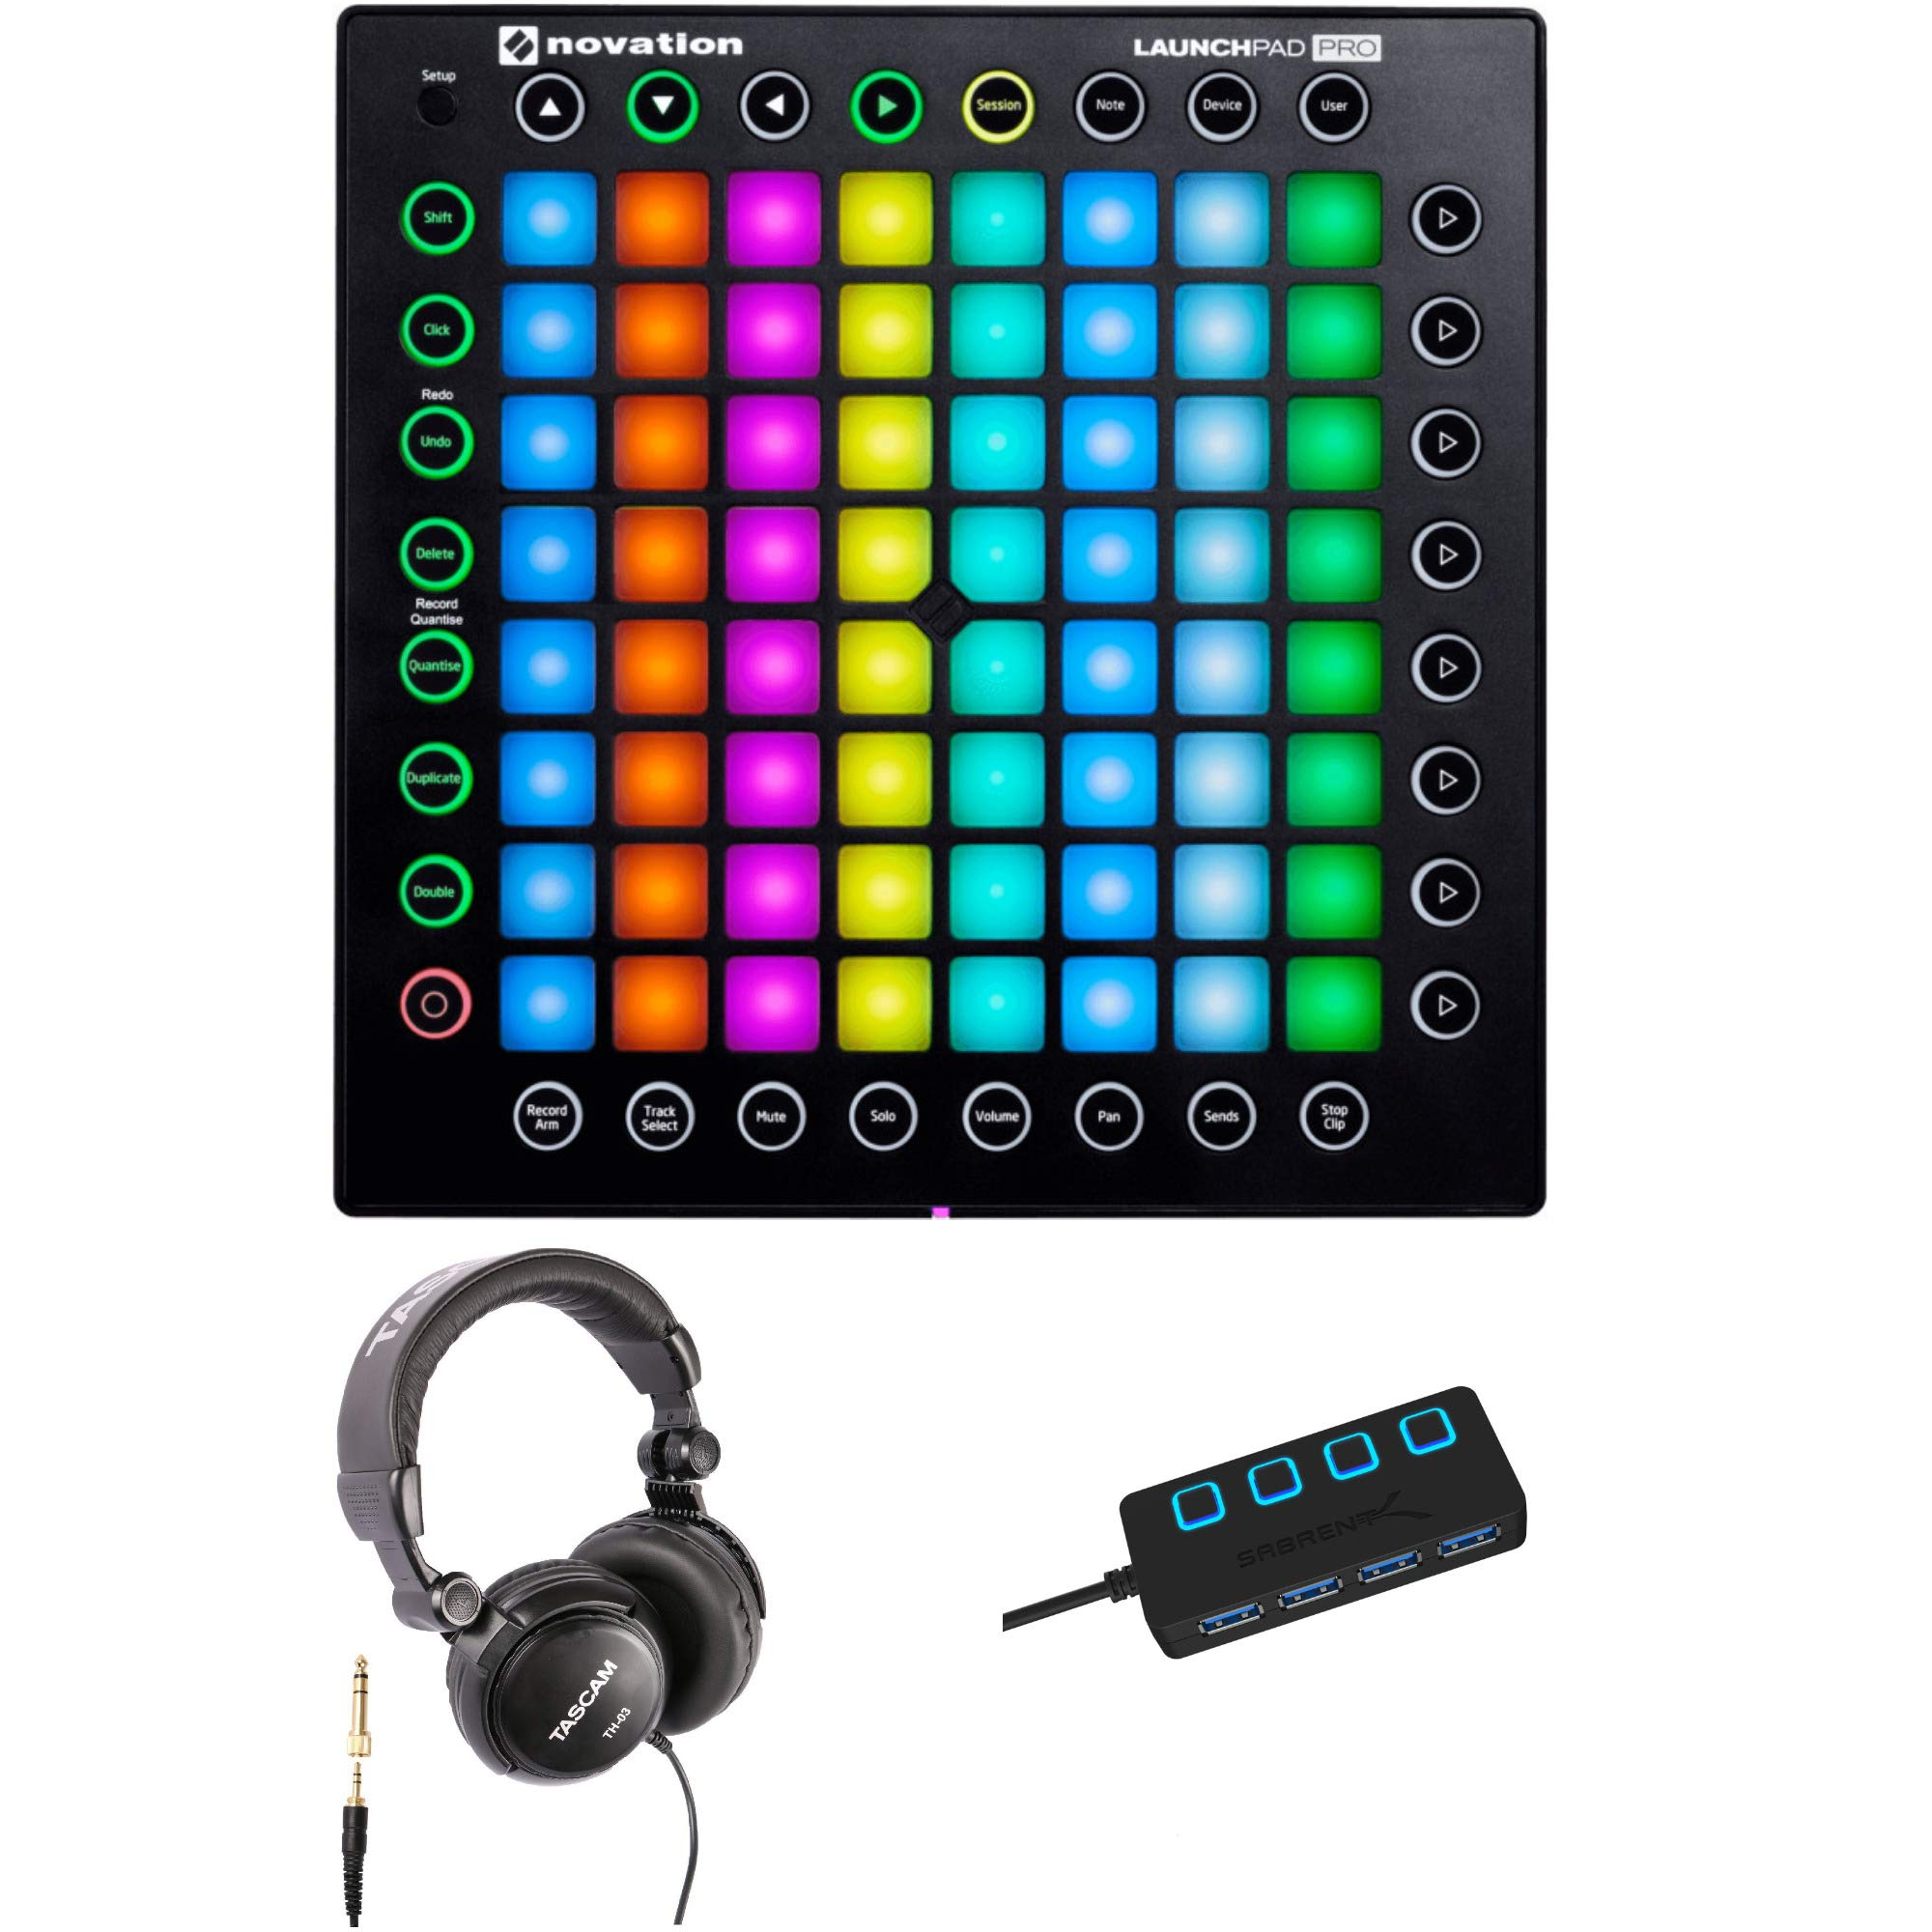 Novation Launchpad Pro USB MIDI Ableton Live Controller with Headphones and 4-Port 3.0 USB HUB by Novation